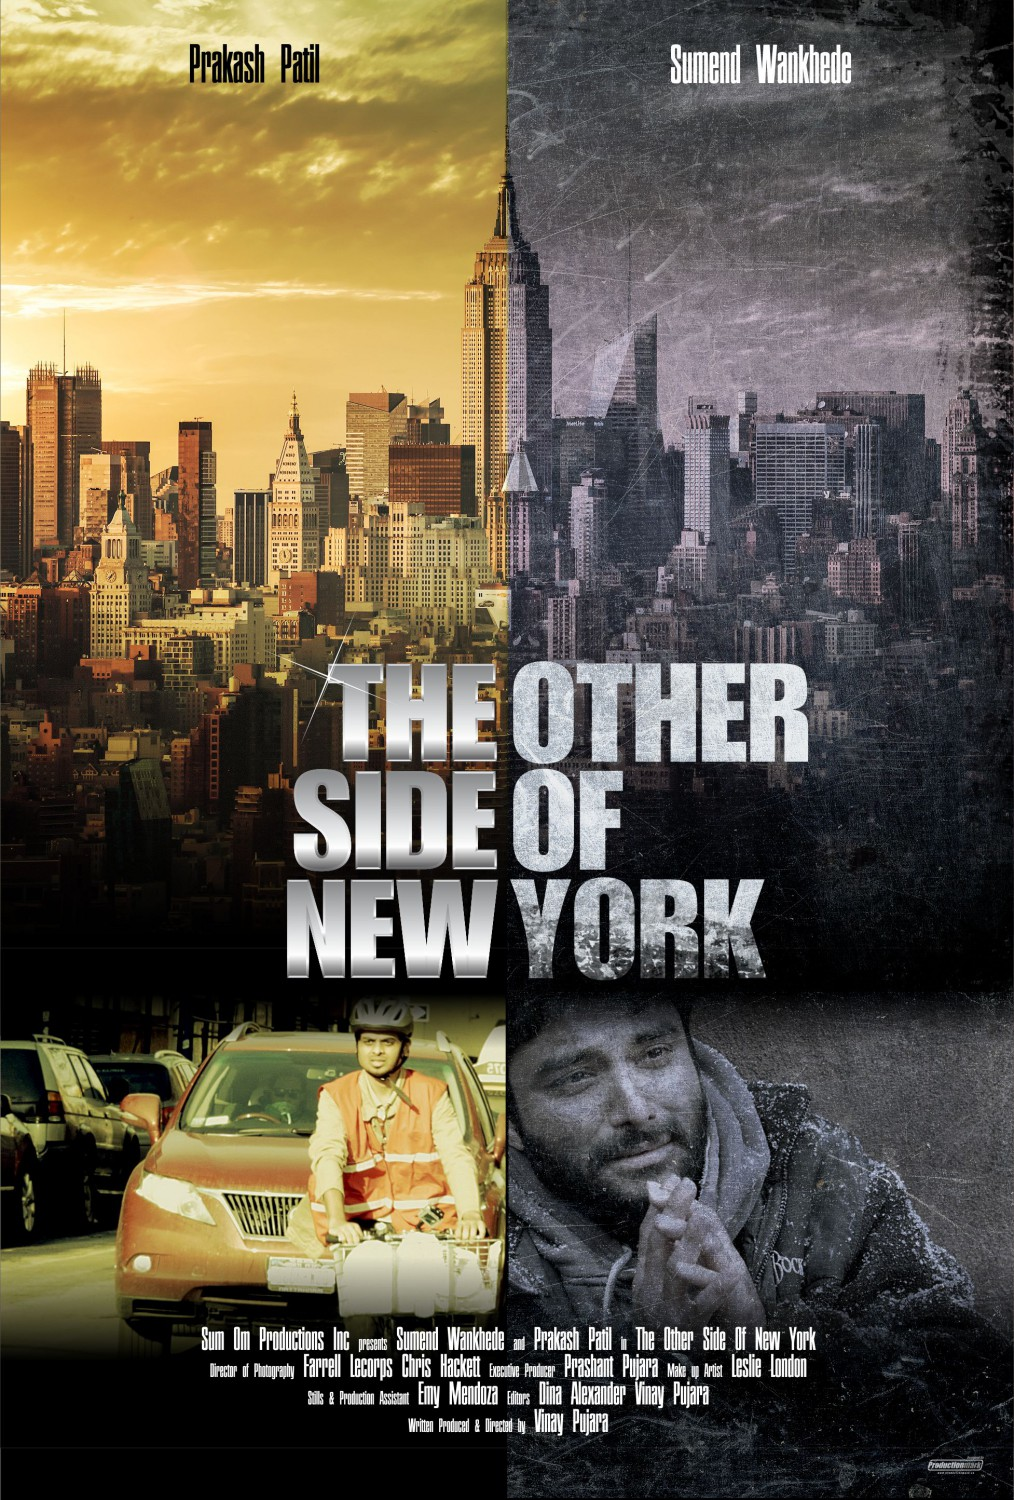 Productionmark-Services-Film-Poster-Design-Short-Film-The-Other-Side-Of-New-York